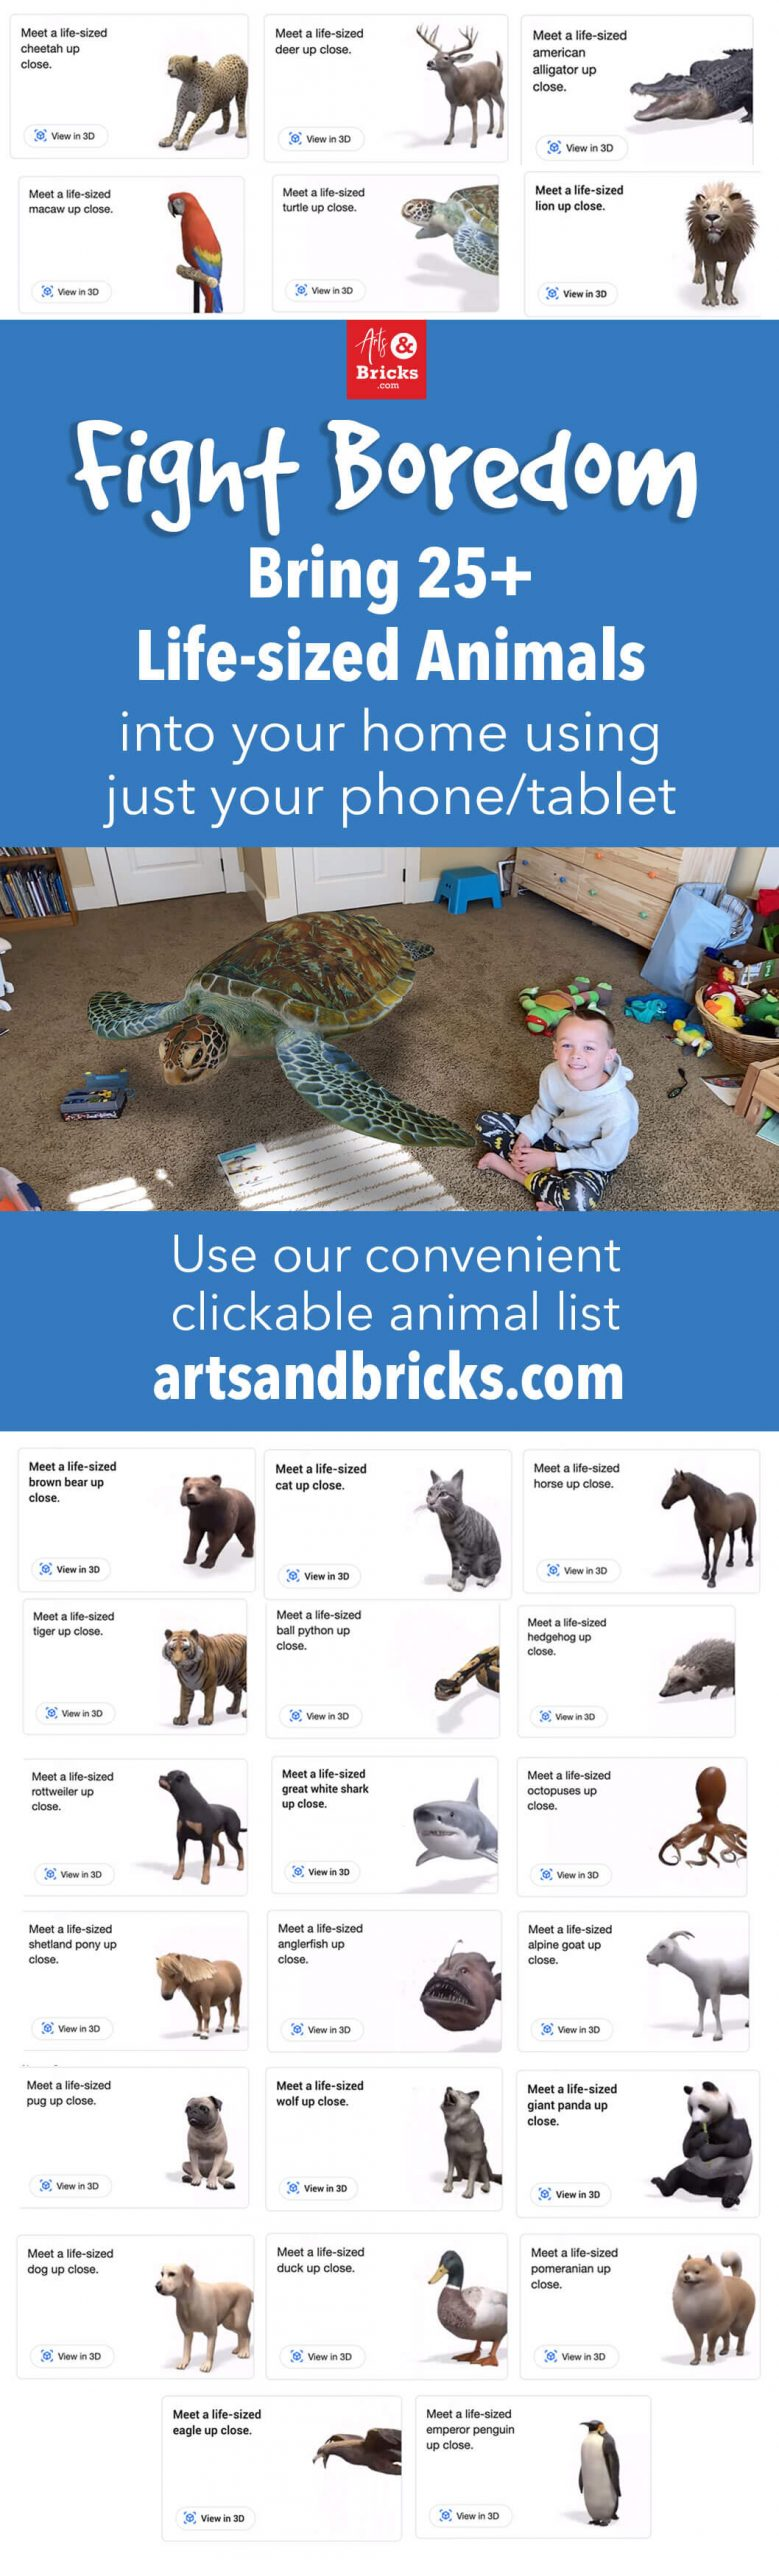 Fight Boredom - Bring 25+ Life-sized animals into your home using just your phone or tablet. Full clickable list on artsandbricks.com